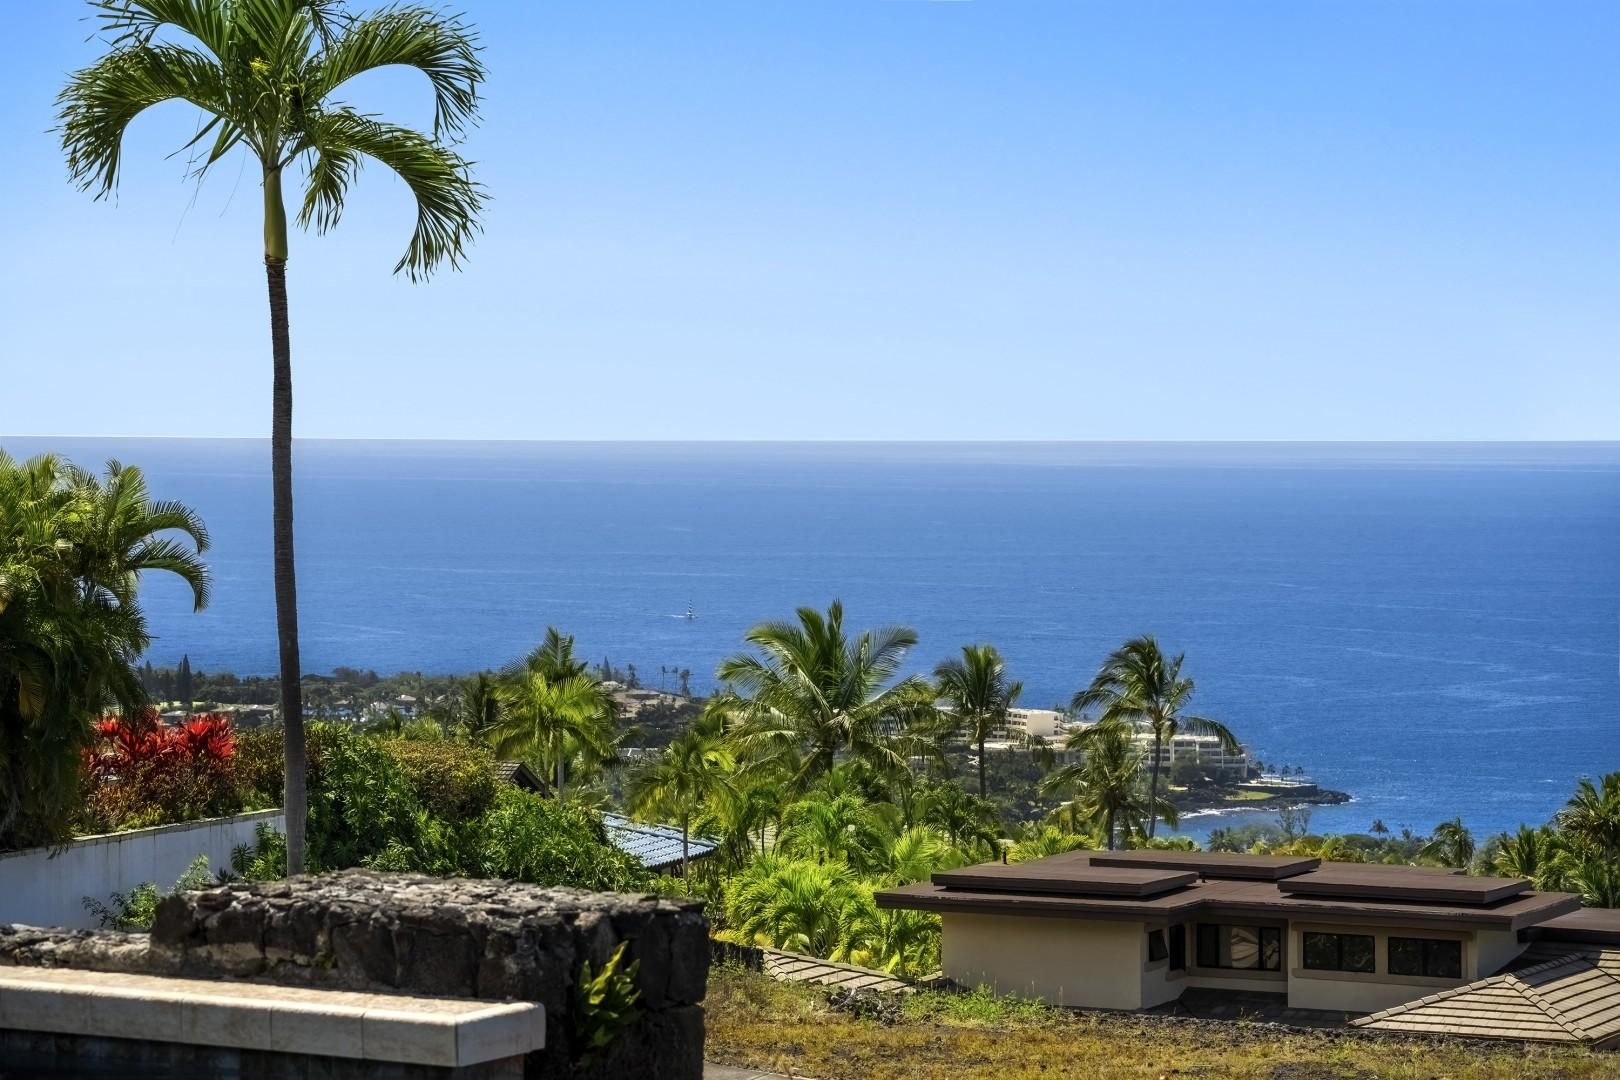 View from the Lanai off the Master bedroom